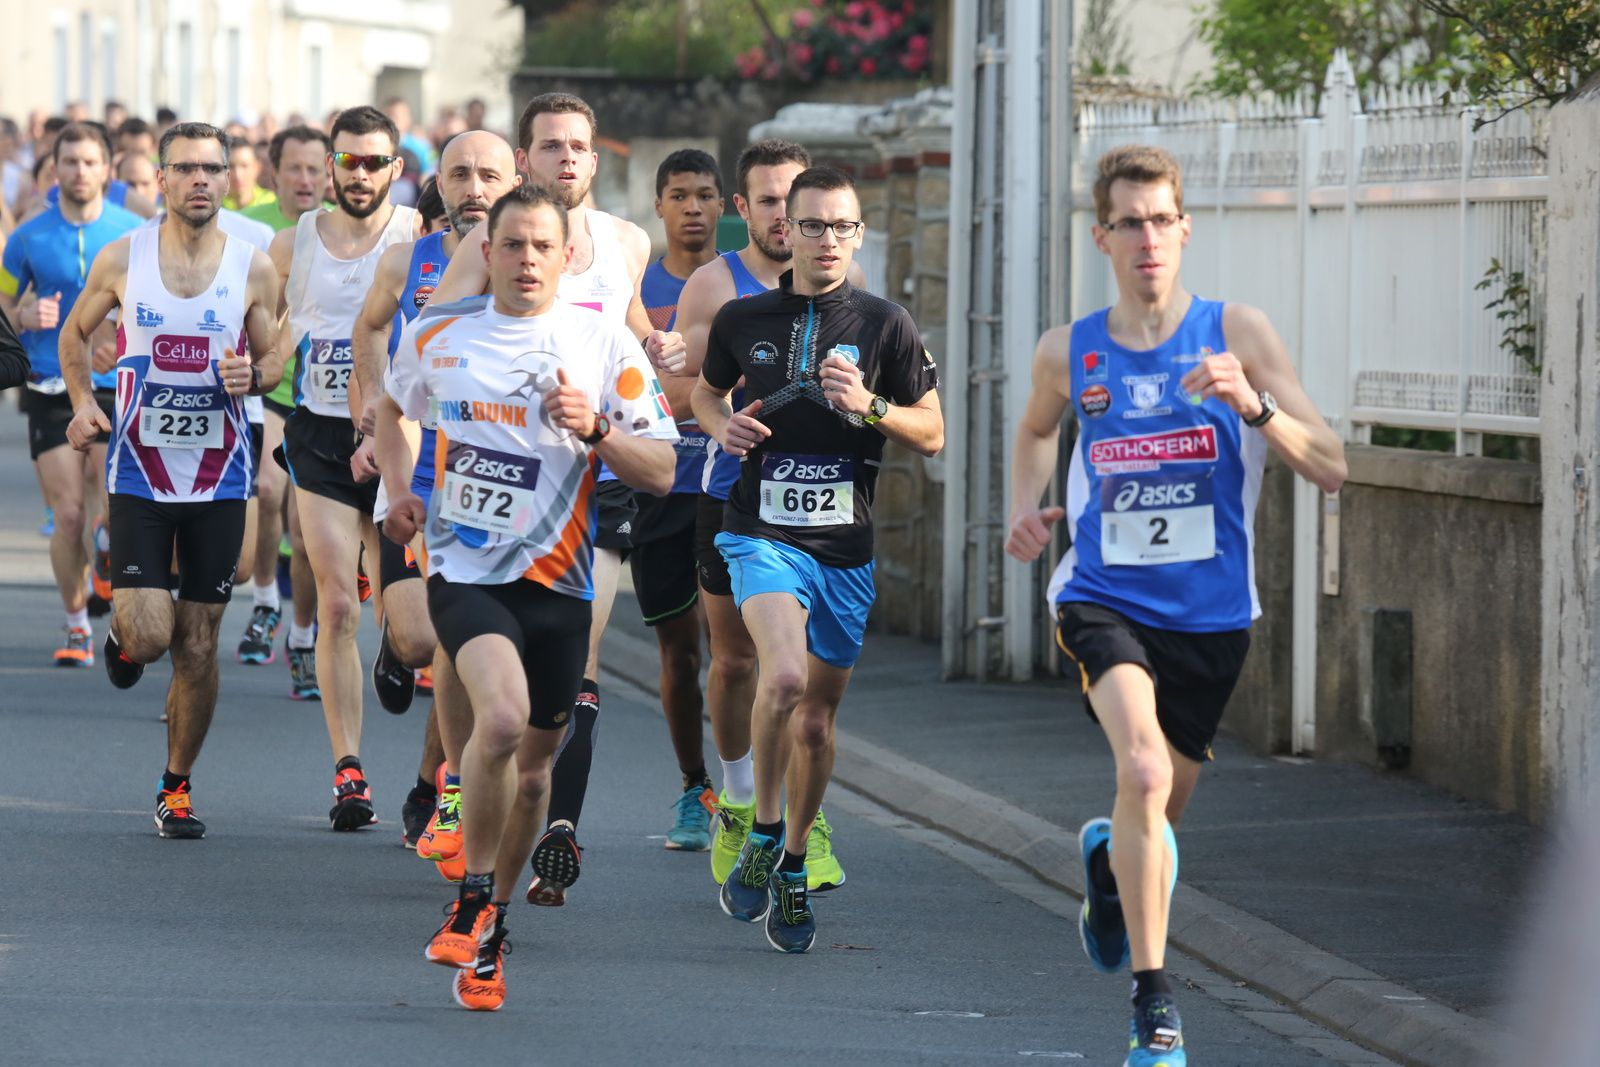 Les photos du 10 km de Thouars